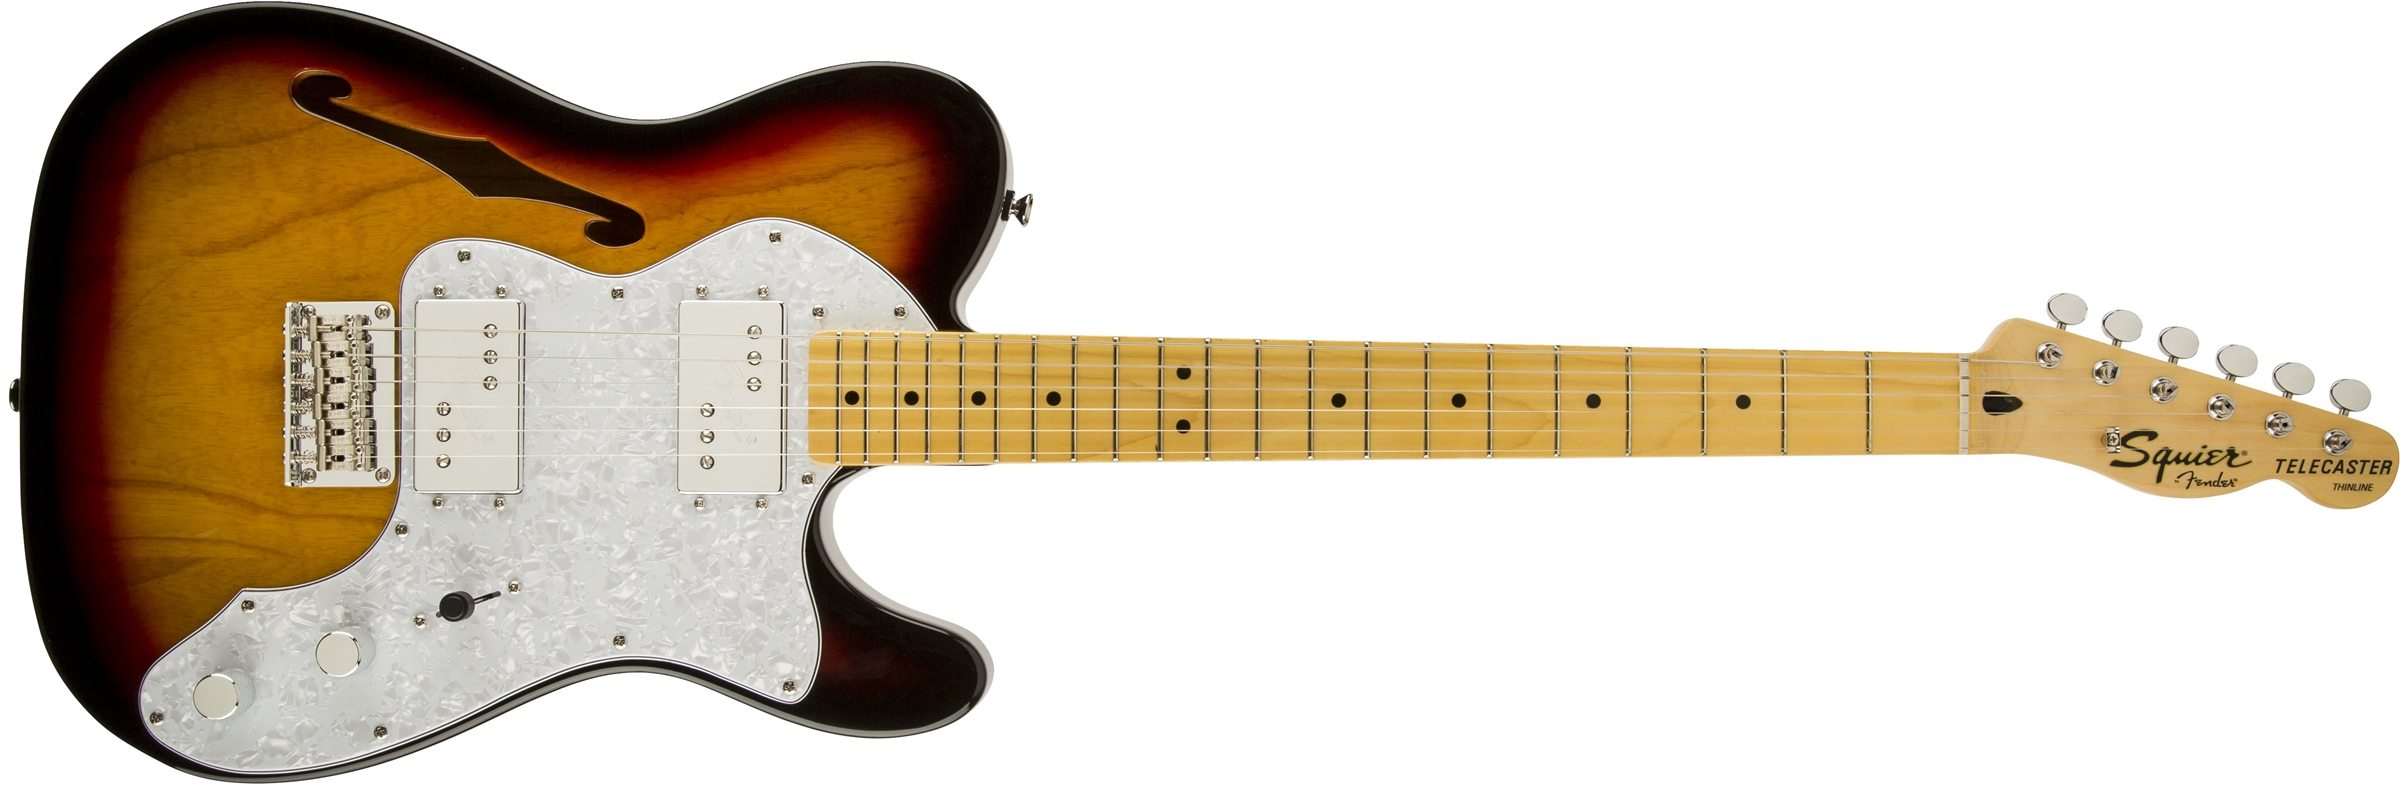 0301280500_gtr_frt_001_rr squier� vintage modified '72 tele thinline, maple fingerboard, 3 72 tele thinline wiring diagram at mifinder.co